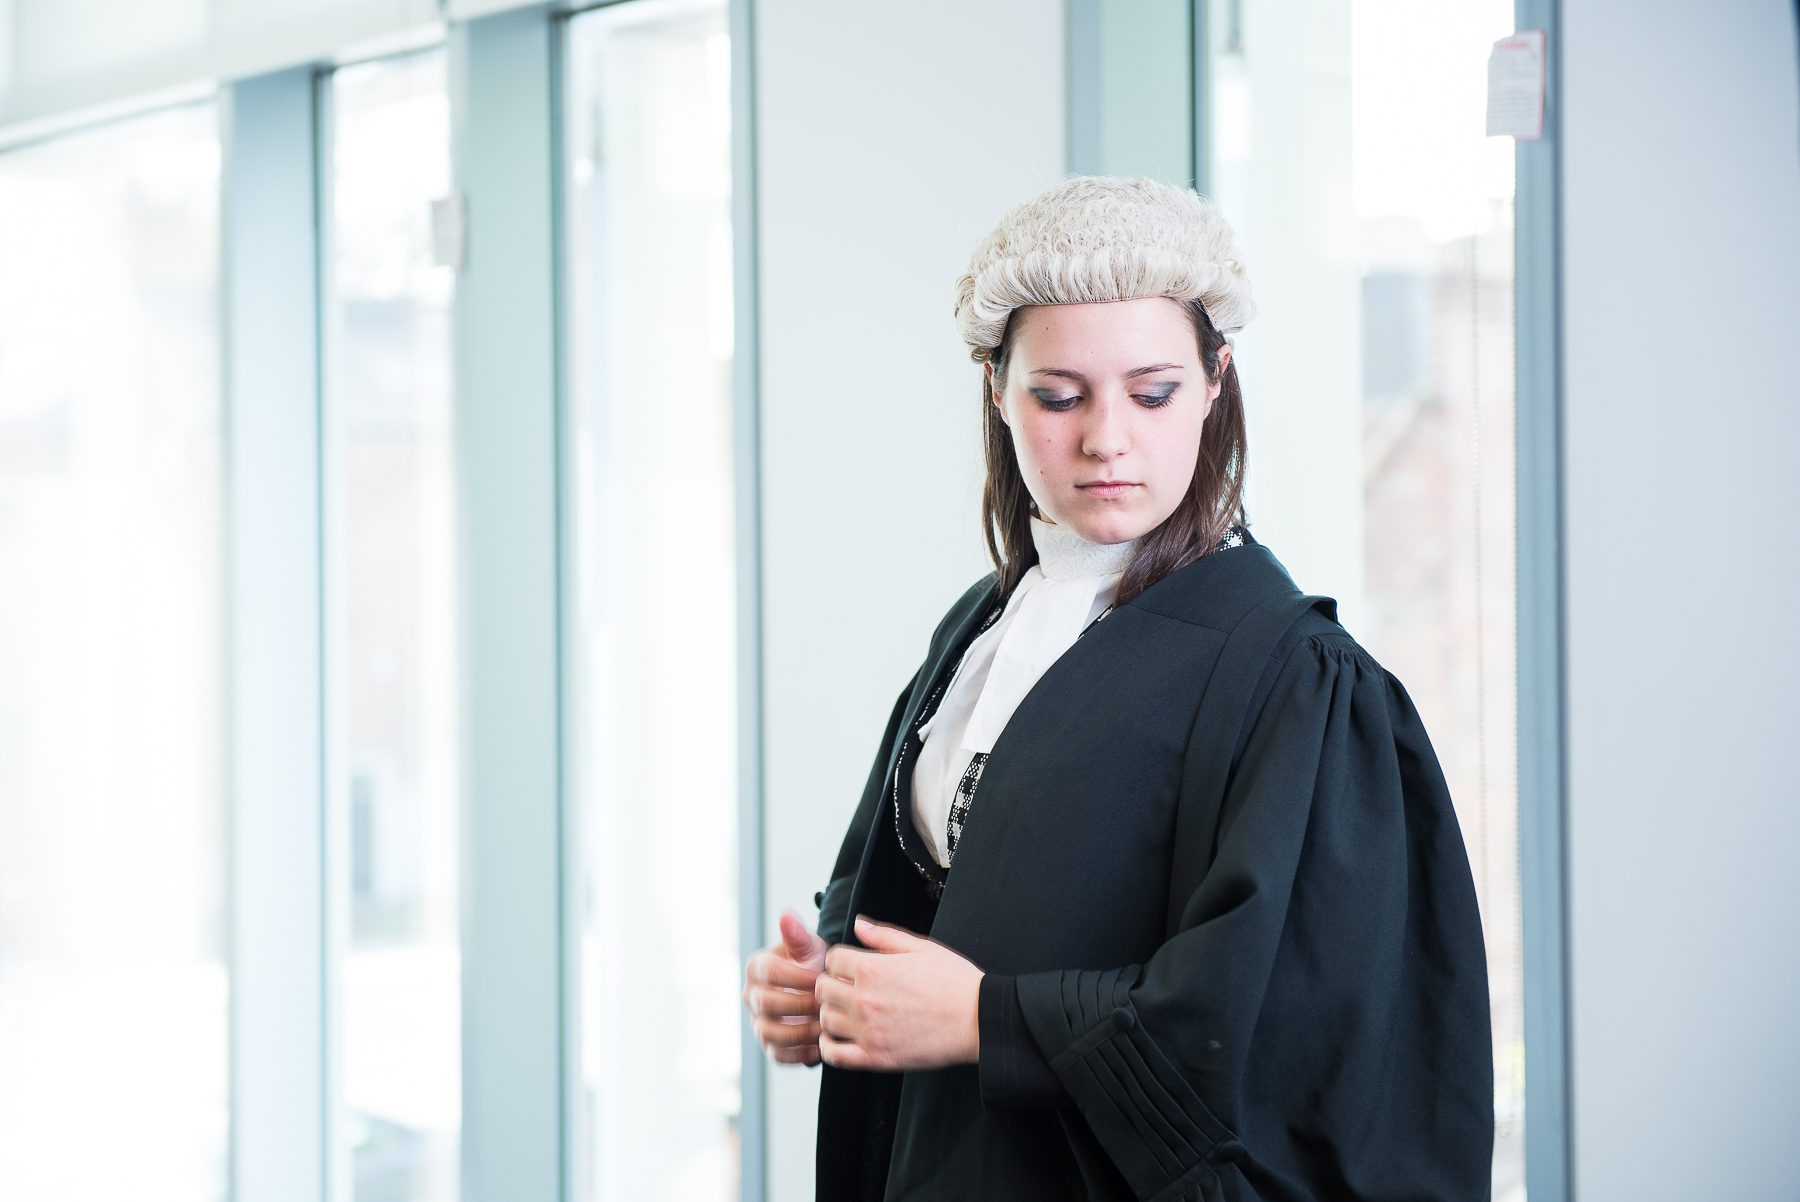 Law student preparing for a case